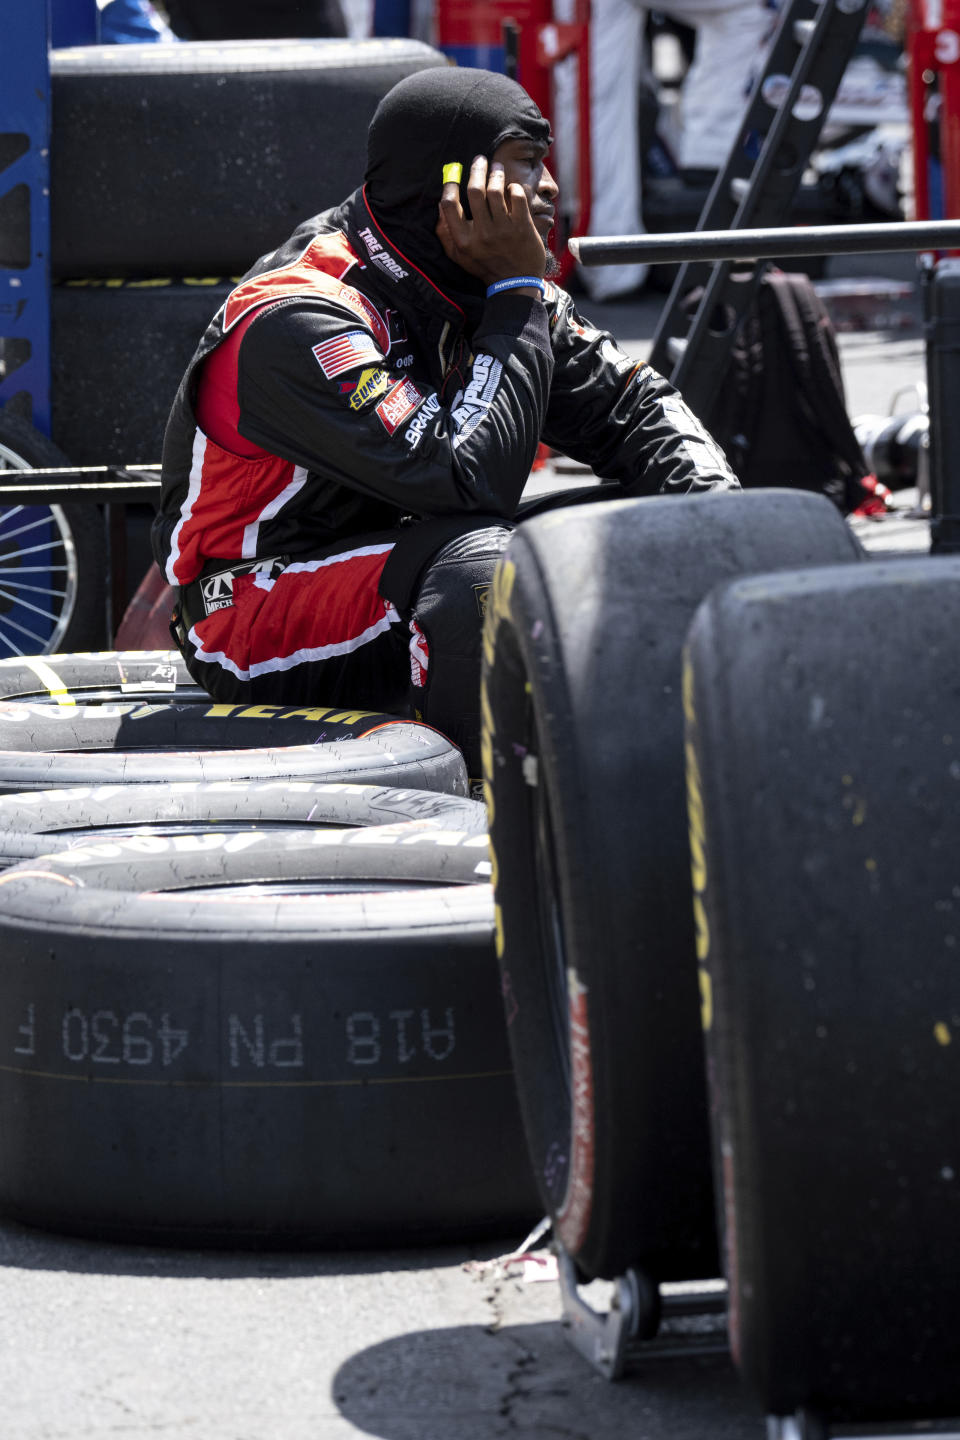 A crew member sits on tires during a NASCAR Xfinity Series auto race at Charlotte Motor Speedway, Saturday, May 29, 2021, in Charlotte, N.C. (AP Photo/Ben Gray)